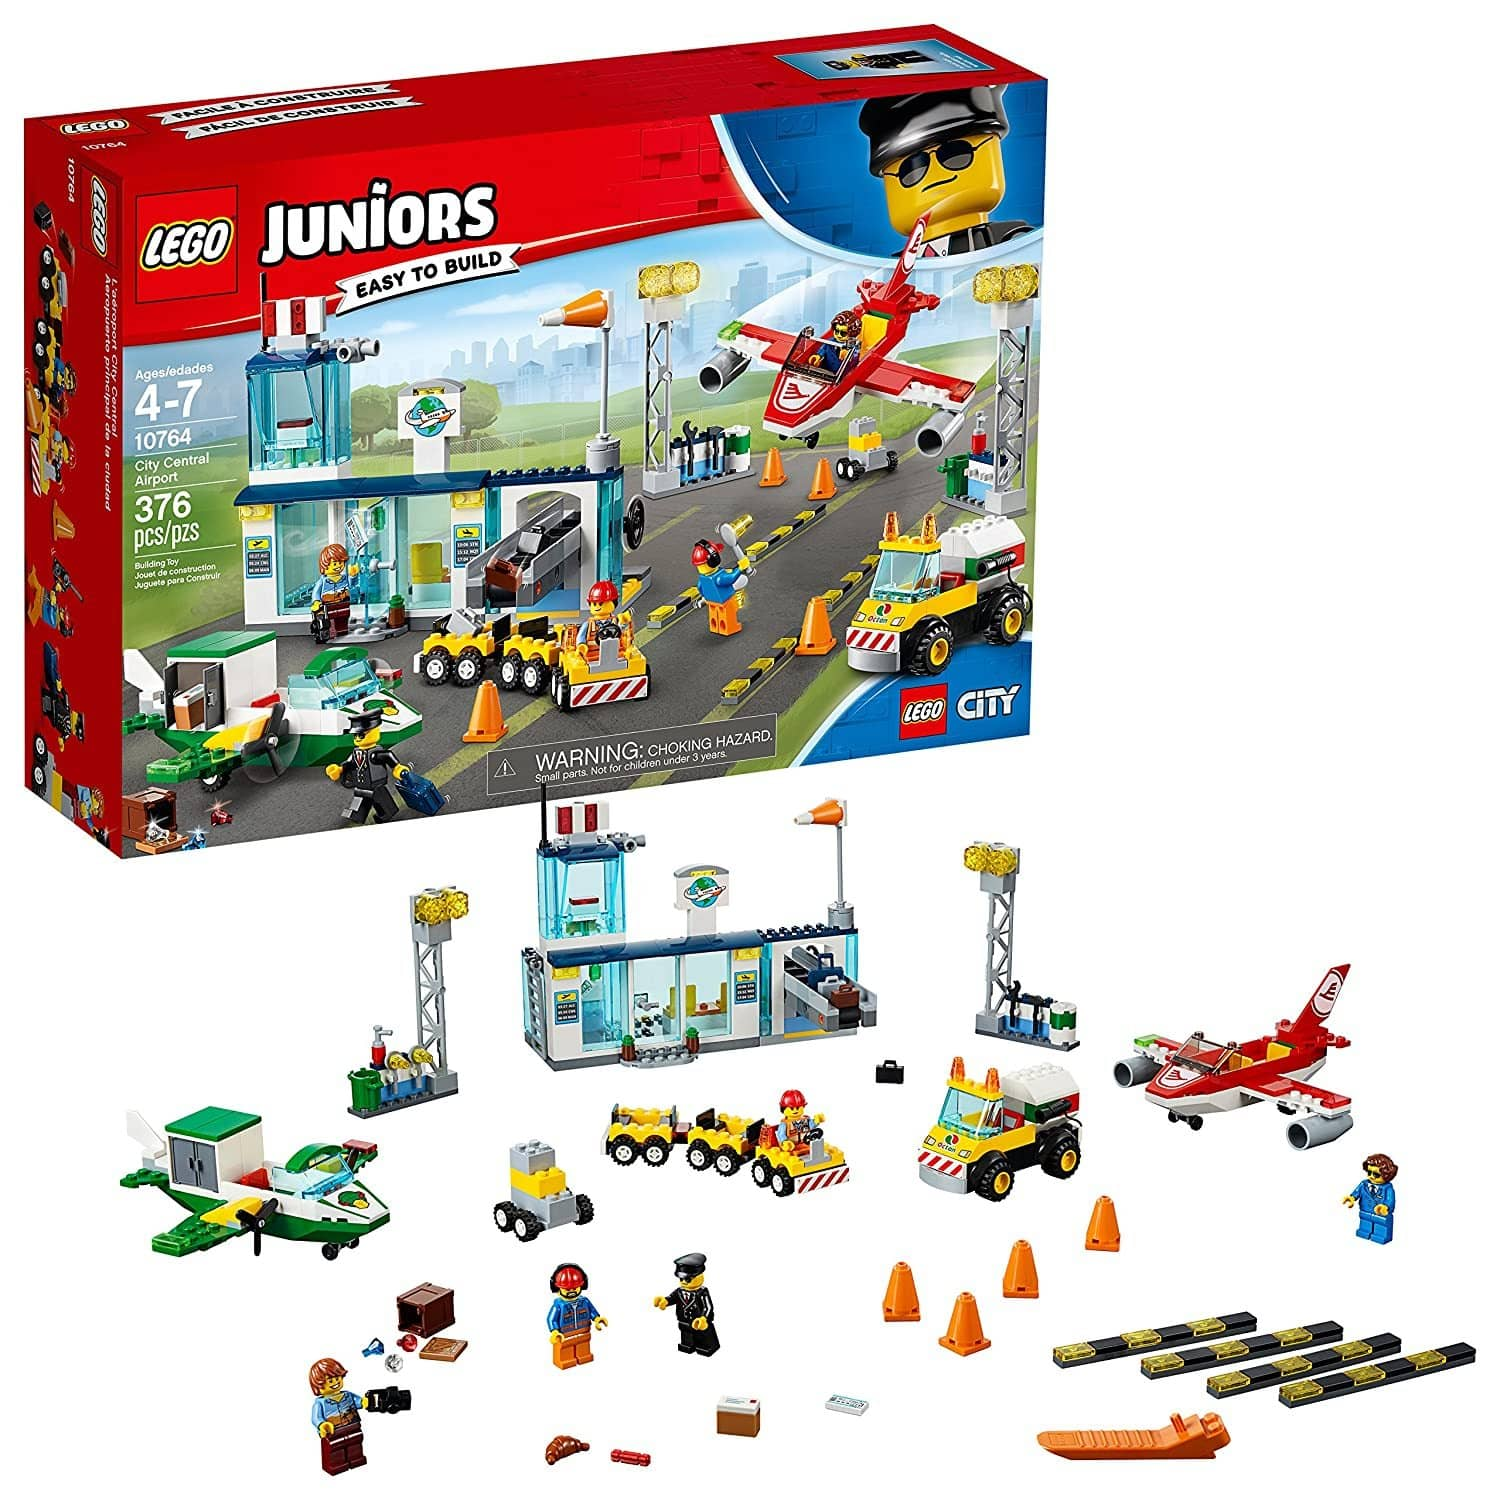 LEGO 10764: Juniors: City Central Airport (376 Pieces)-Kidding Around NYC